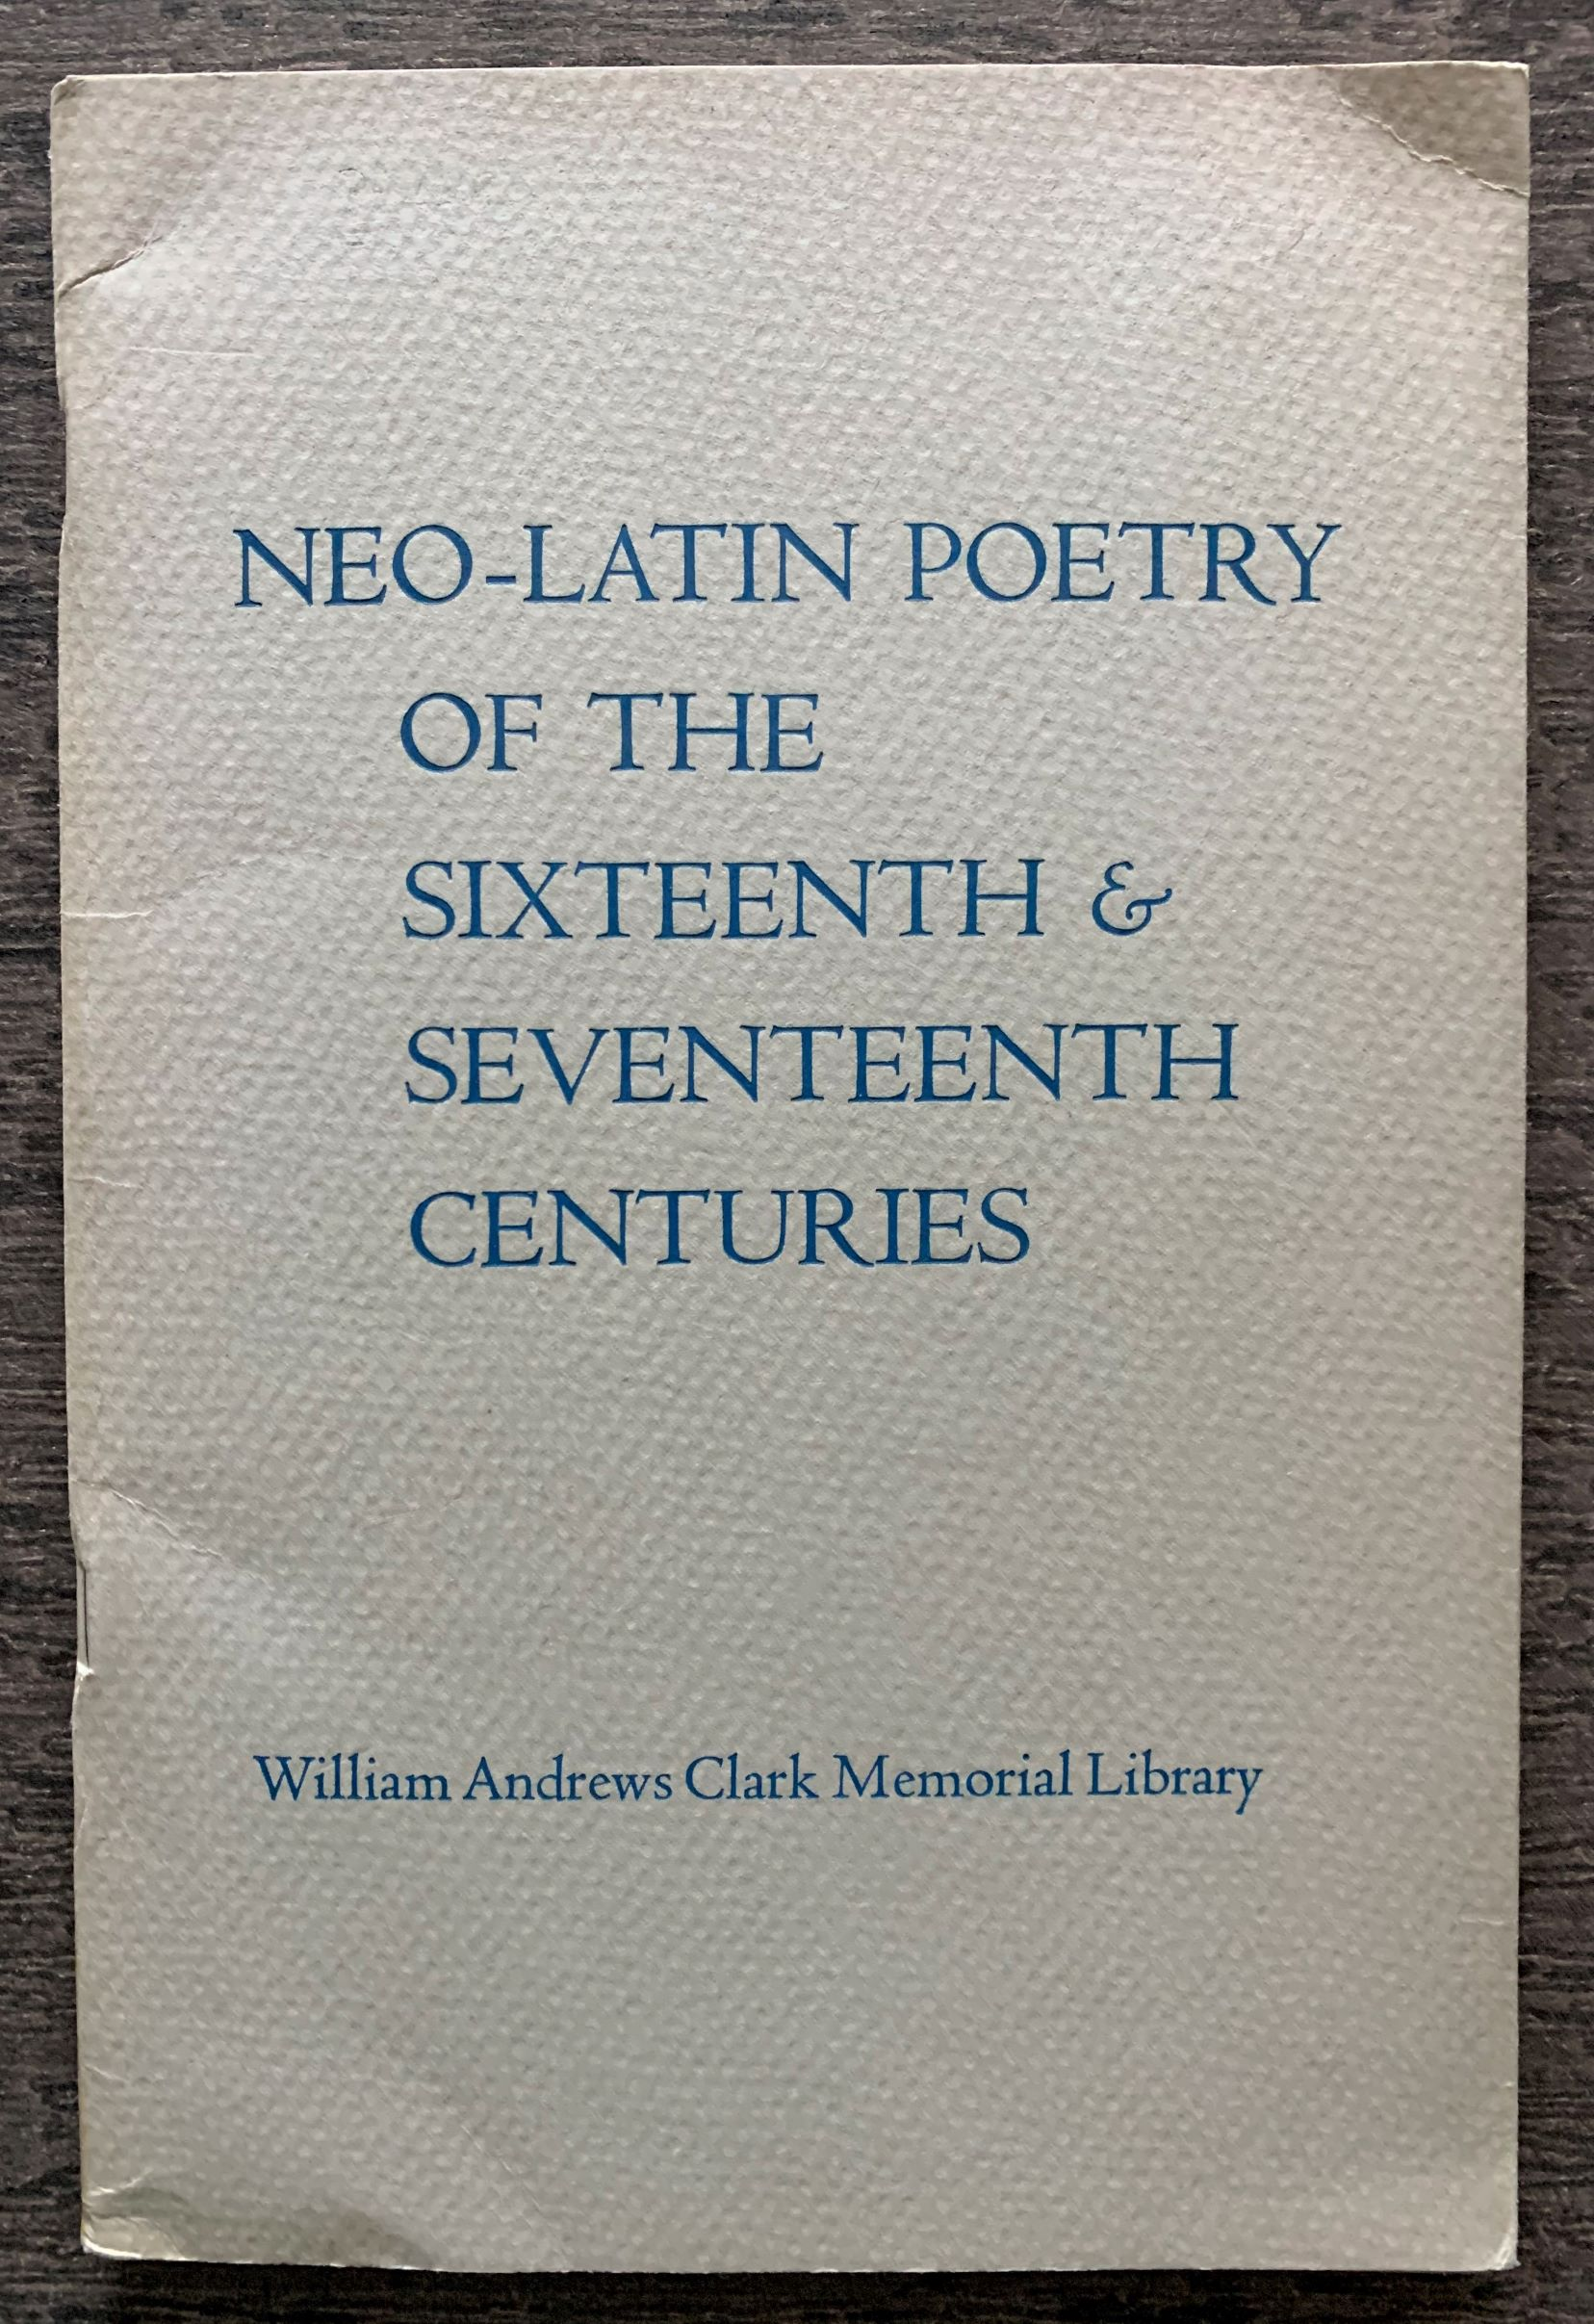 Image for Neo-Latin Poetry of the Sixteenth and Seventeenth Centuries: Papers by James E. Phillips, Don Cameron Allen presented at a Seminar held on October 17, 1964 at the Clark Library.